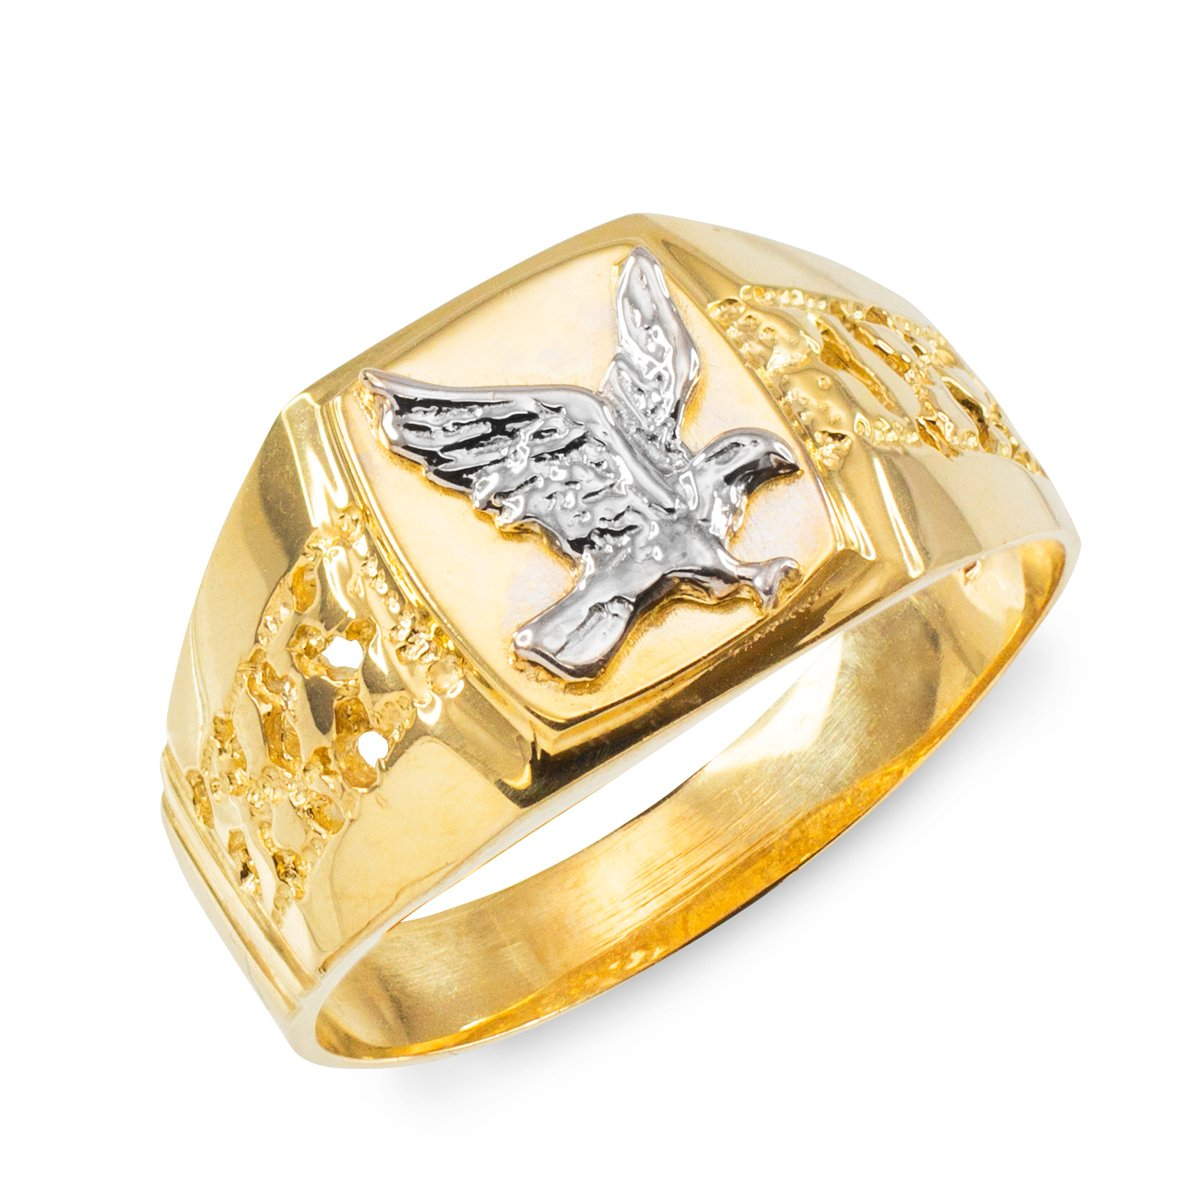 Men's Polished 10k Yellow Gold Open Nugget Band American Eagle Ring (Size 11)